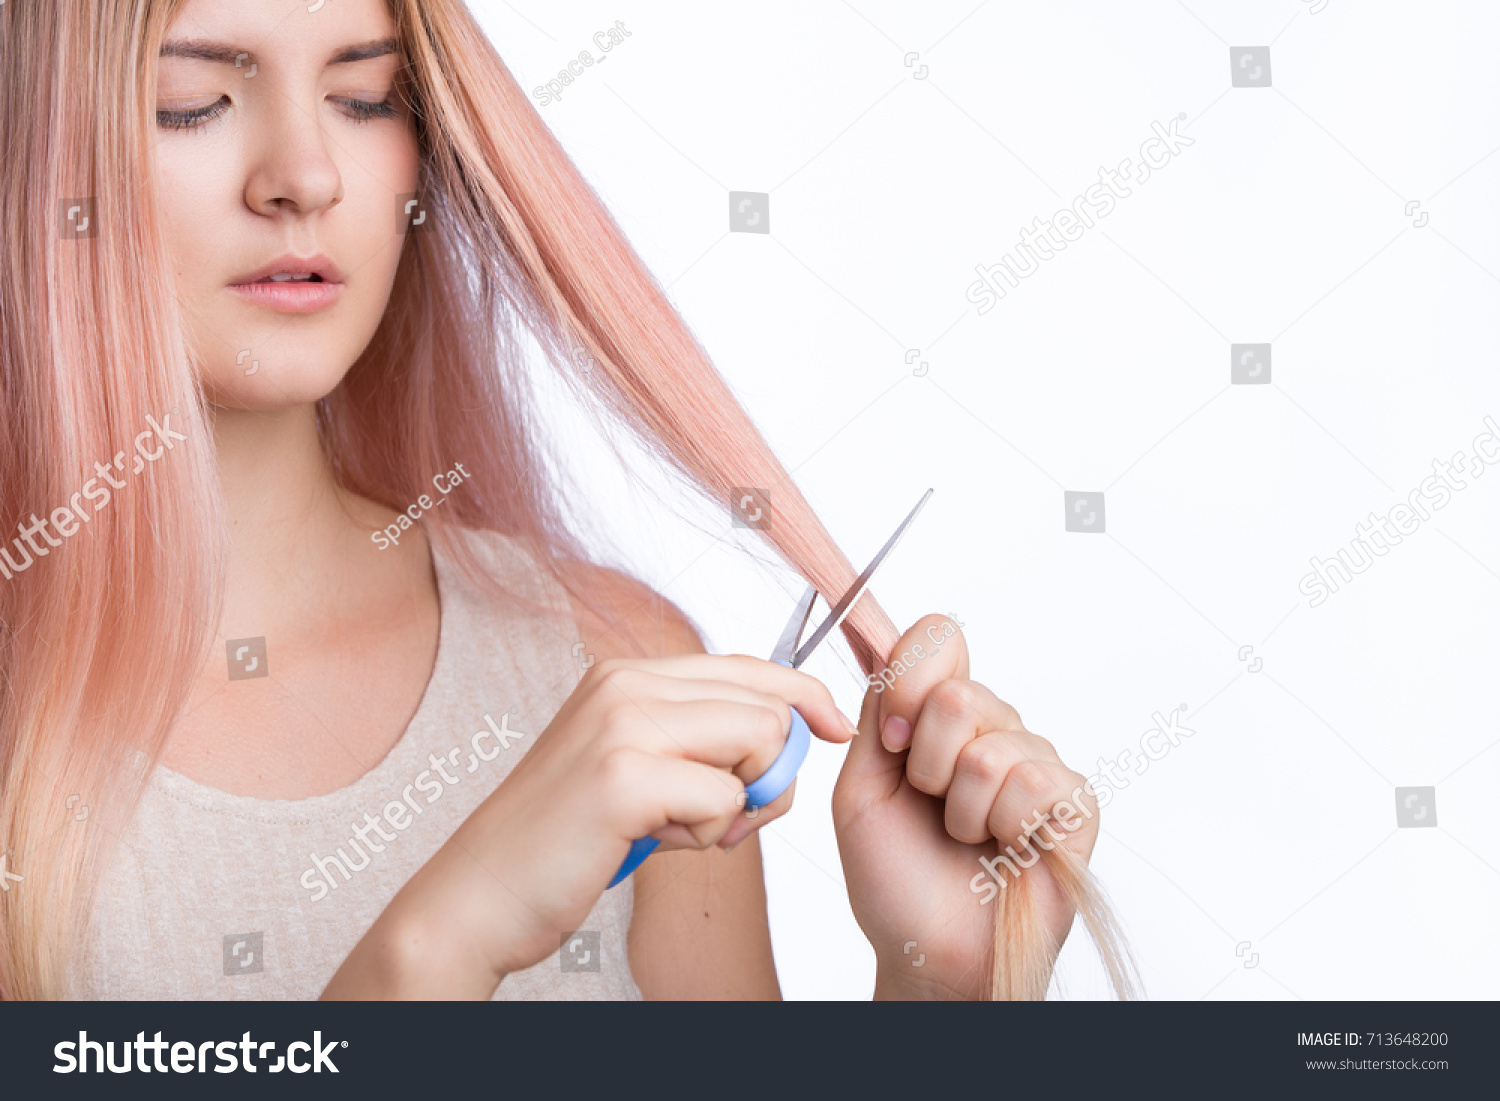 Young girl with golden pink hair cutting her hair with scissors isolated on white